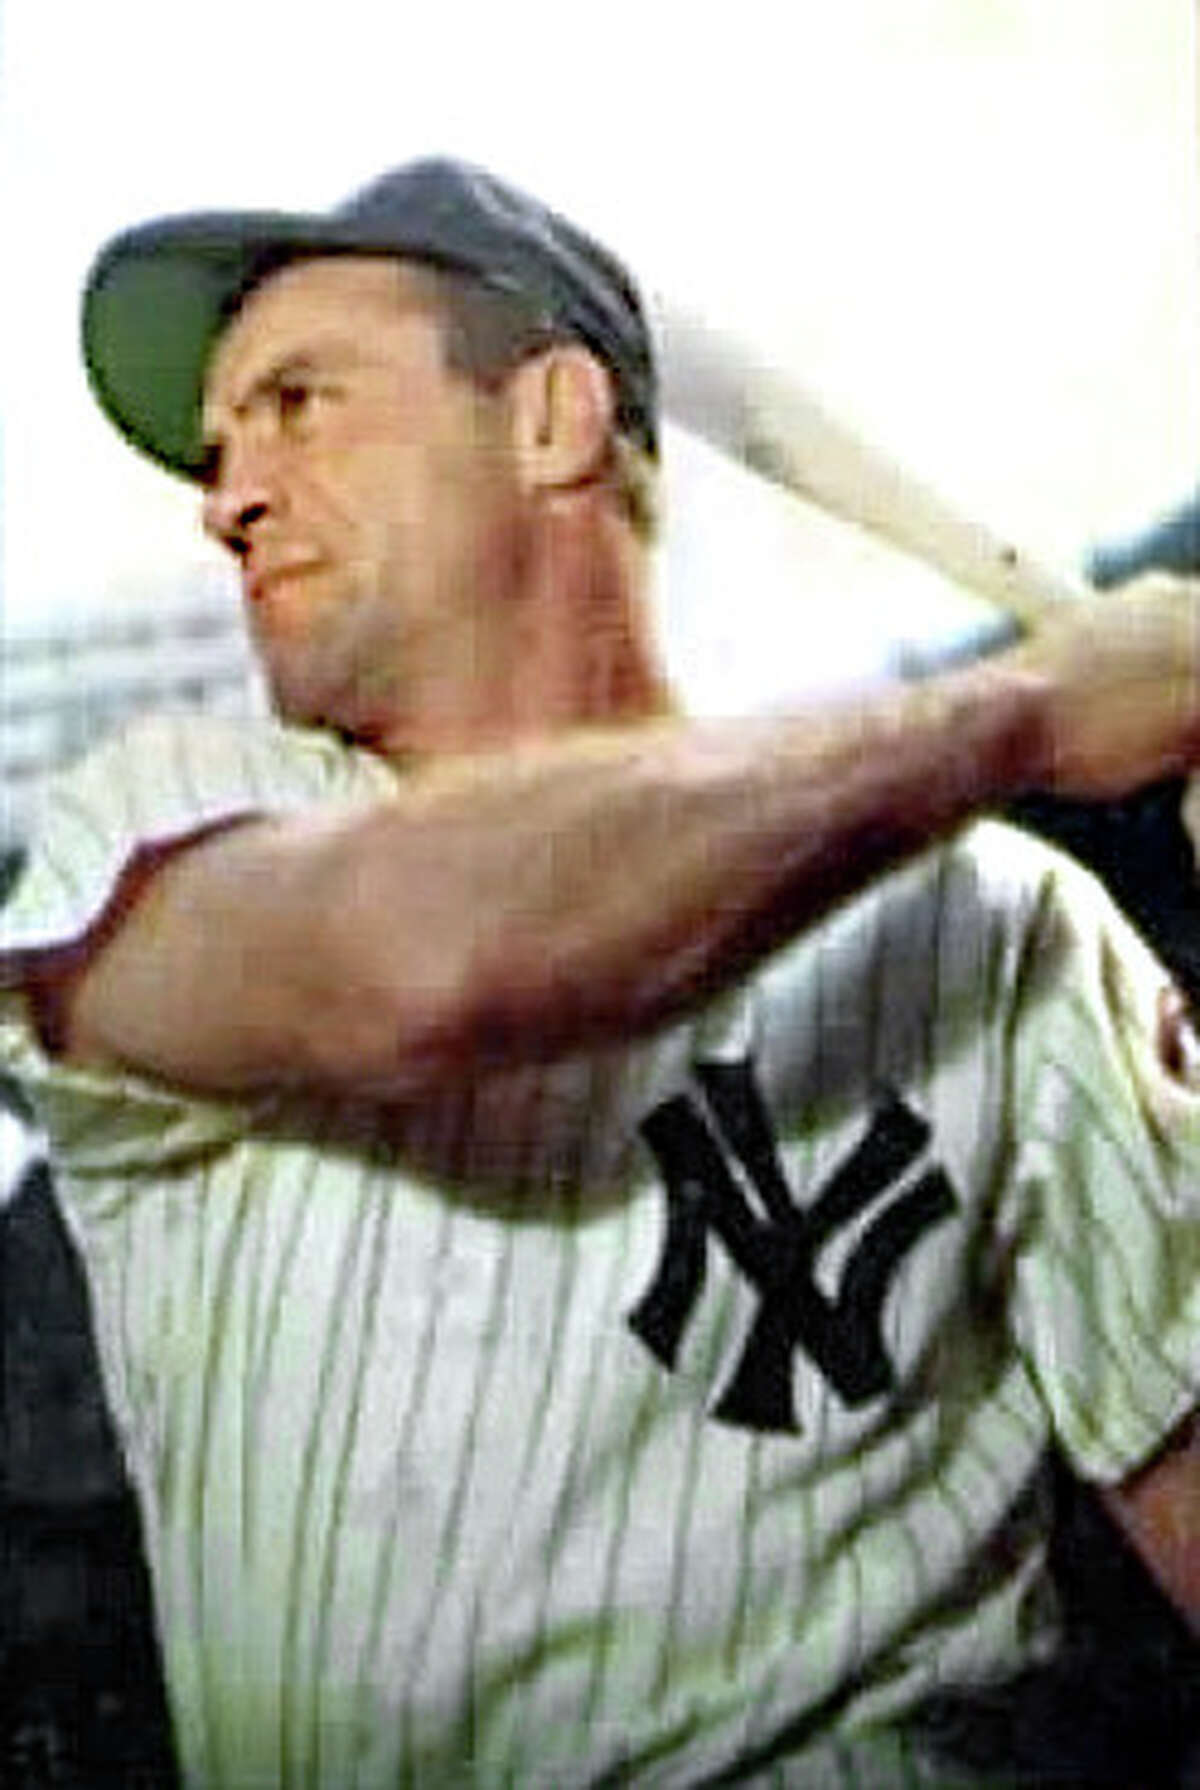 Hank Bauer, East St. Louis:Bauer won 7 World Series Championships as a player with the New York Yankees. He won his 8th World Series ring when he lead the Baltimore Orioles in 1966 as their manager.